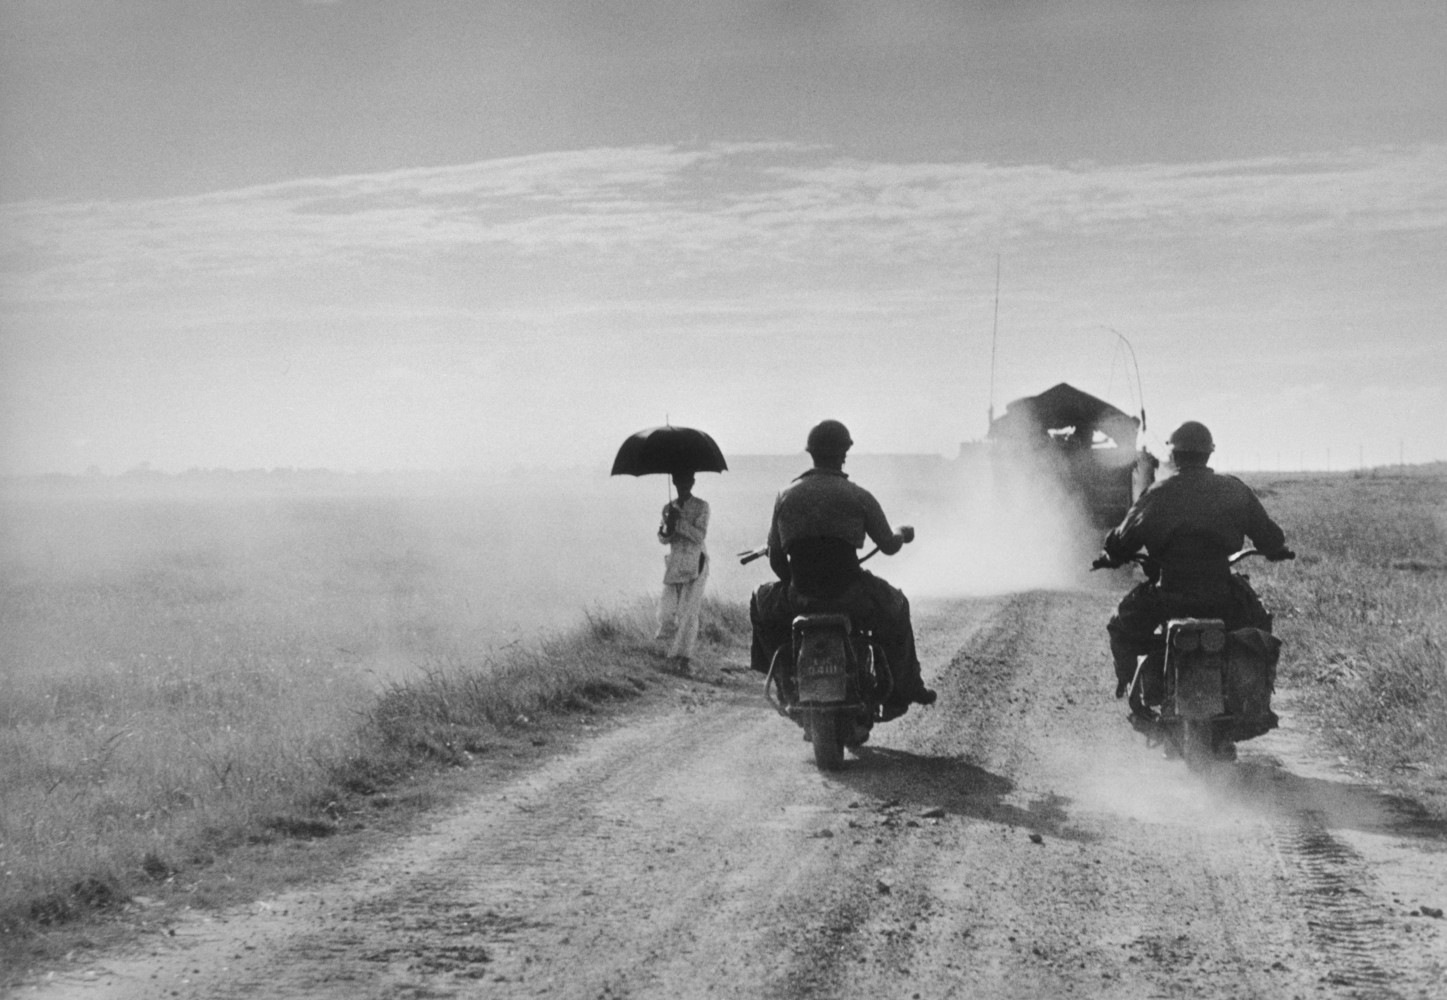 Retrospective in Ancona • Robert Capa • Magnum Photos